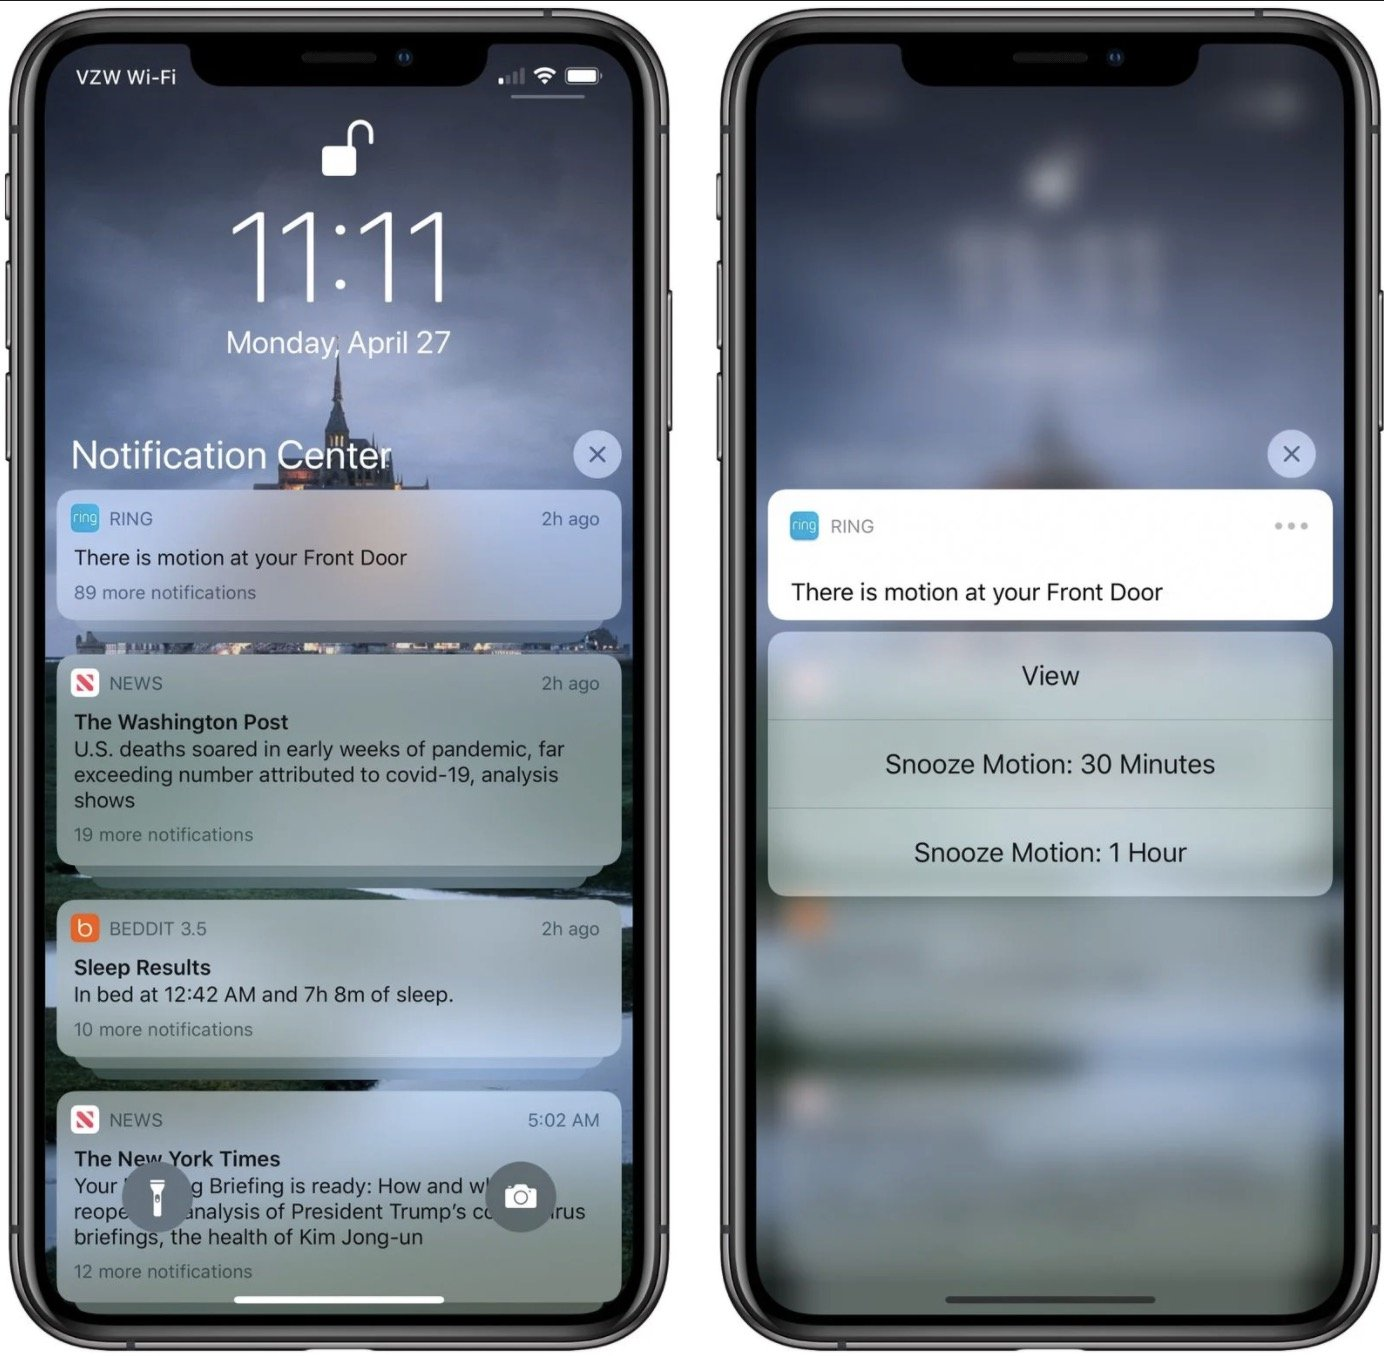 iPhone SE uses Haptic Touch weakened version. Some iPhone 11 / XR functions cannot be achieved